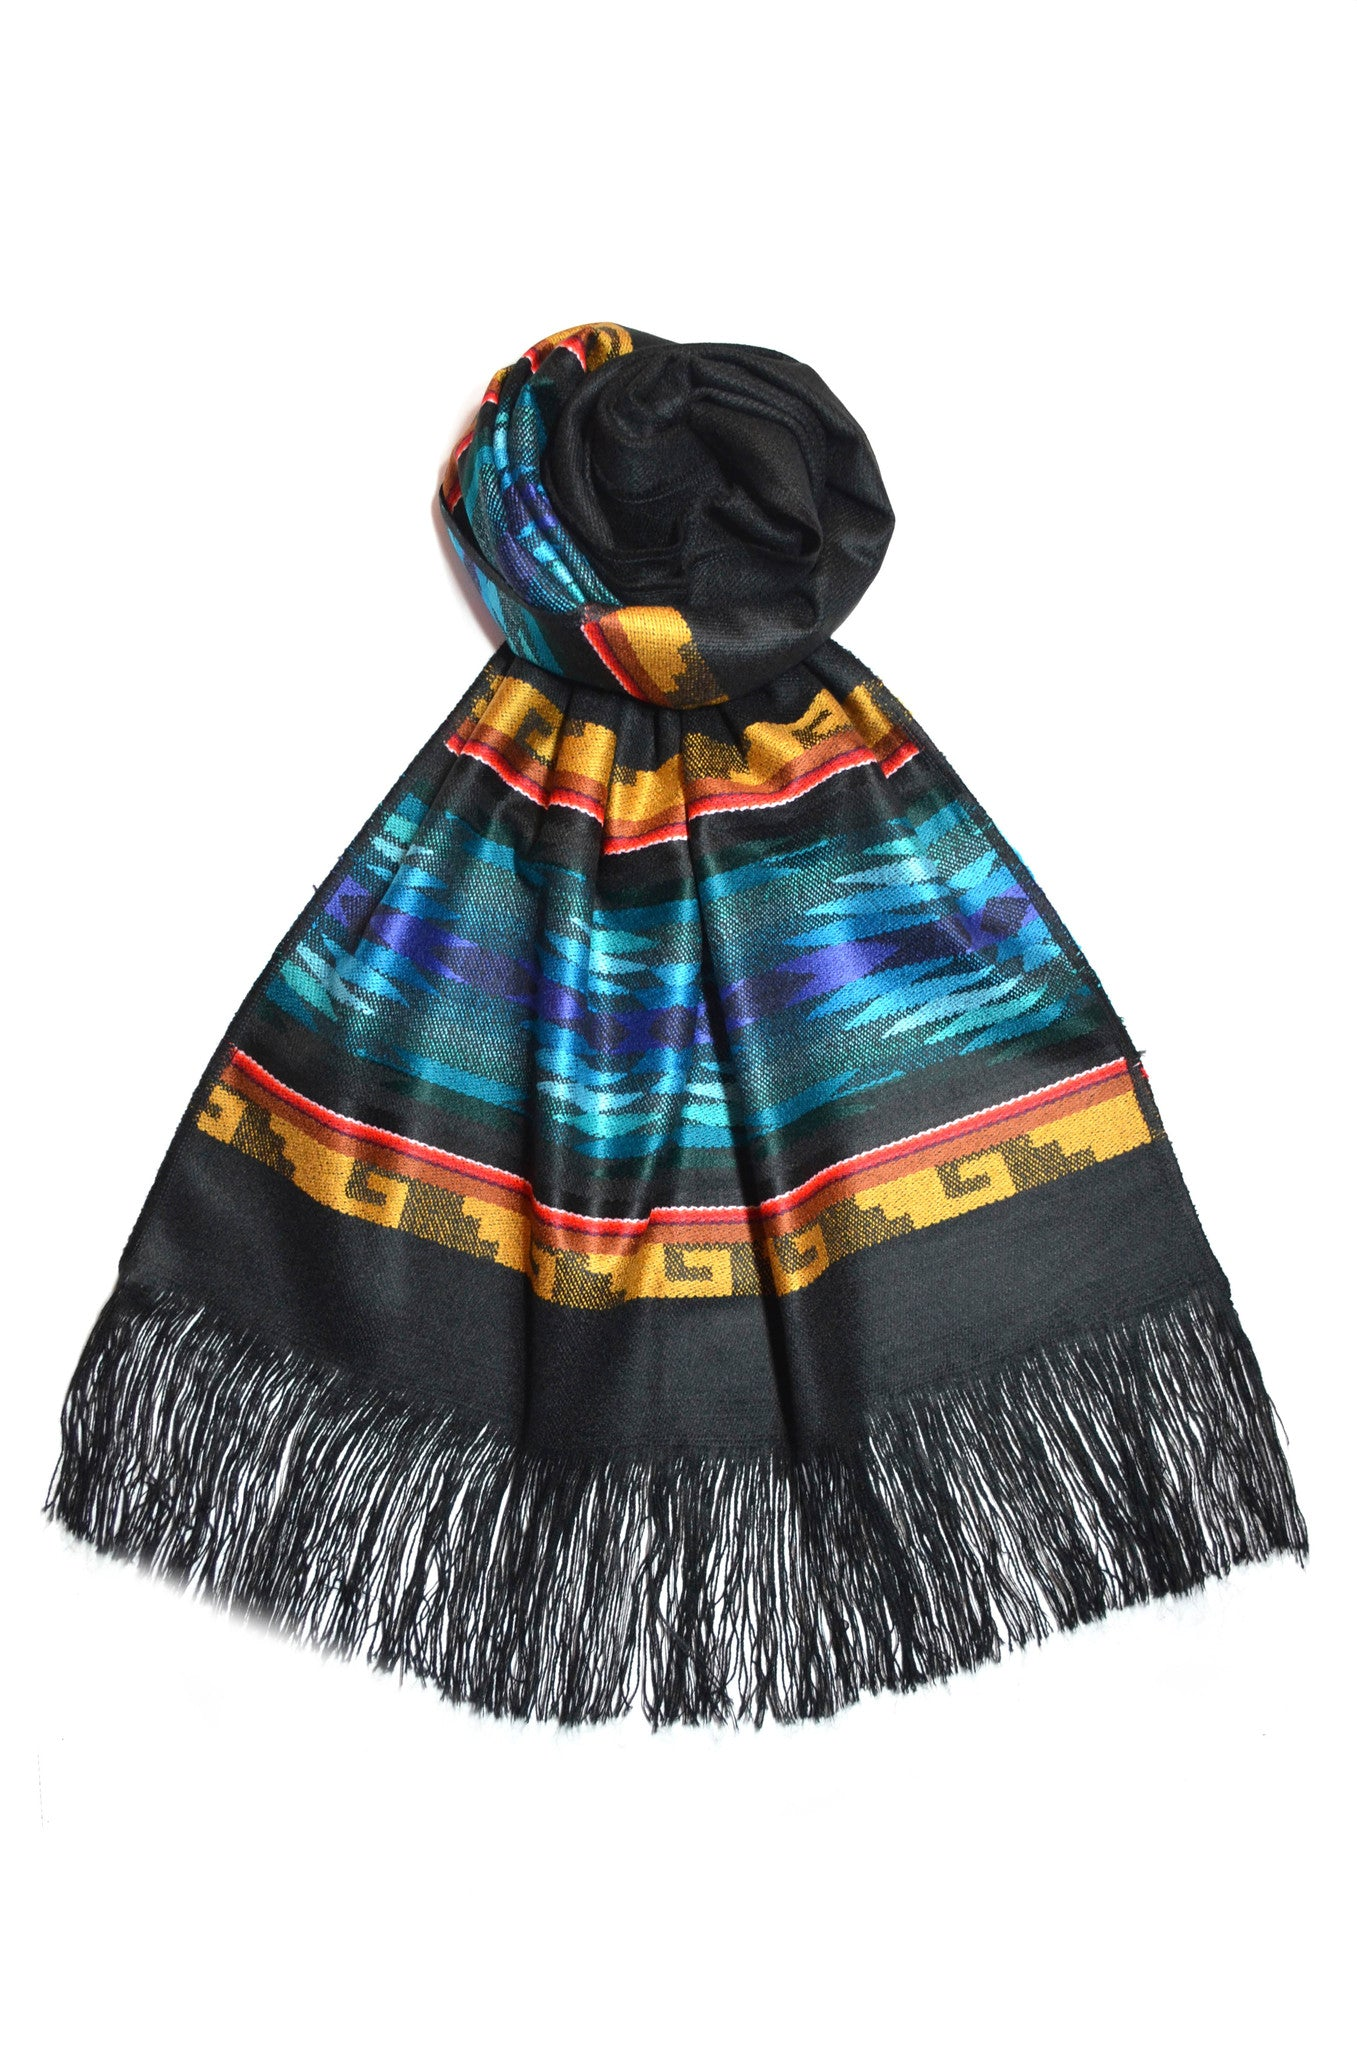 OTAVALO SHAWL -  COLD NIGHT